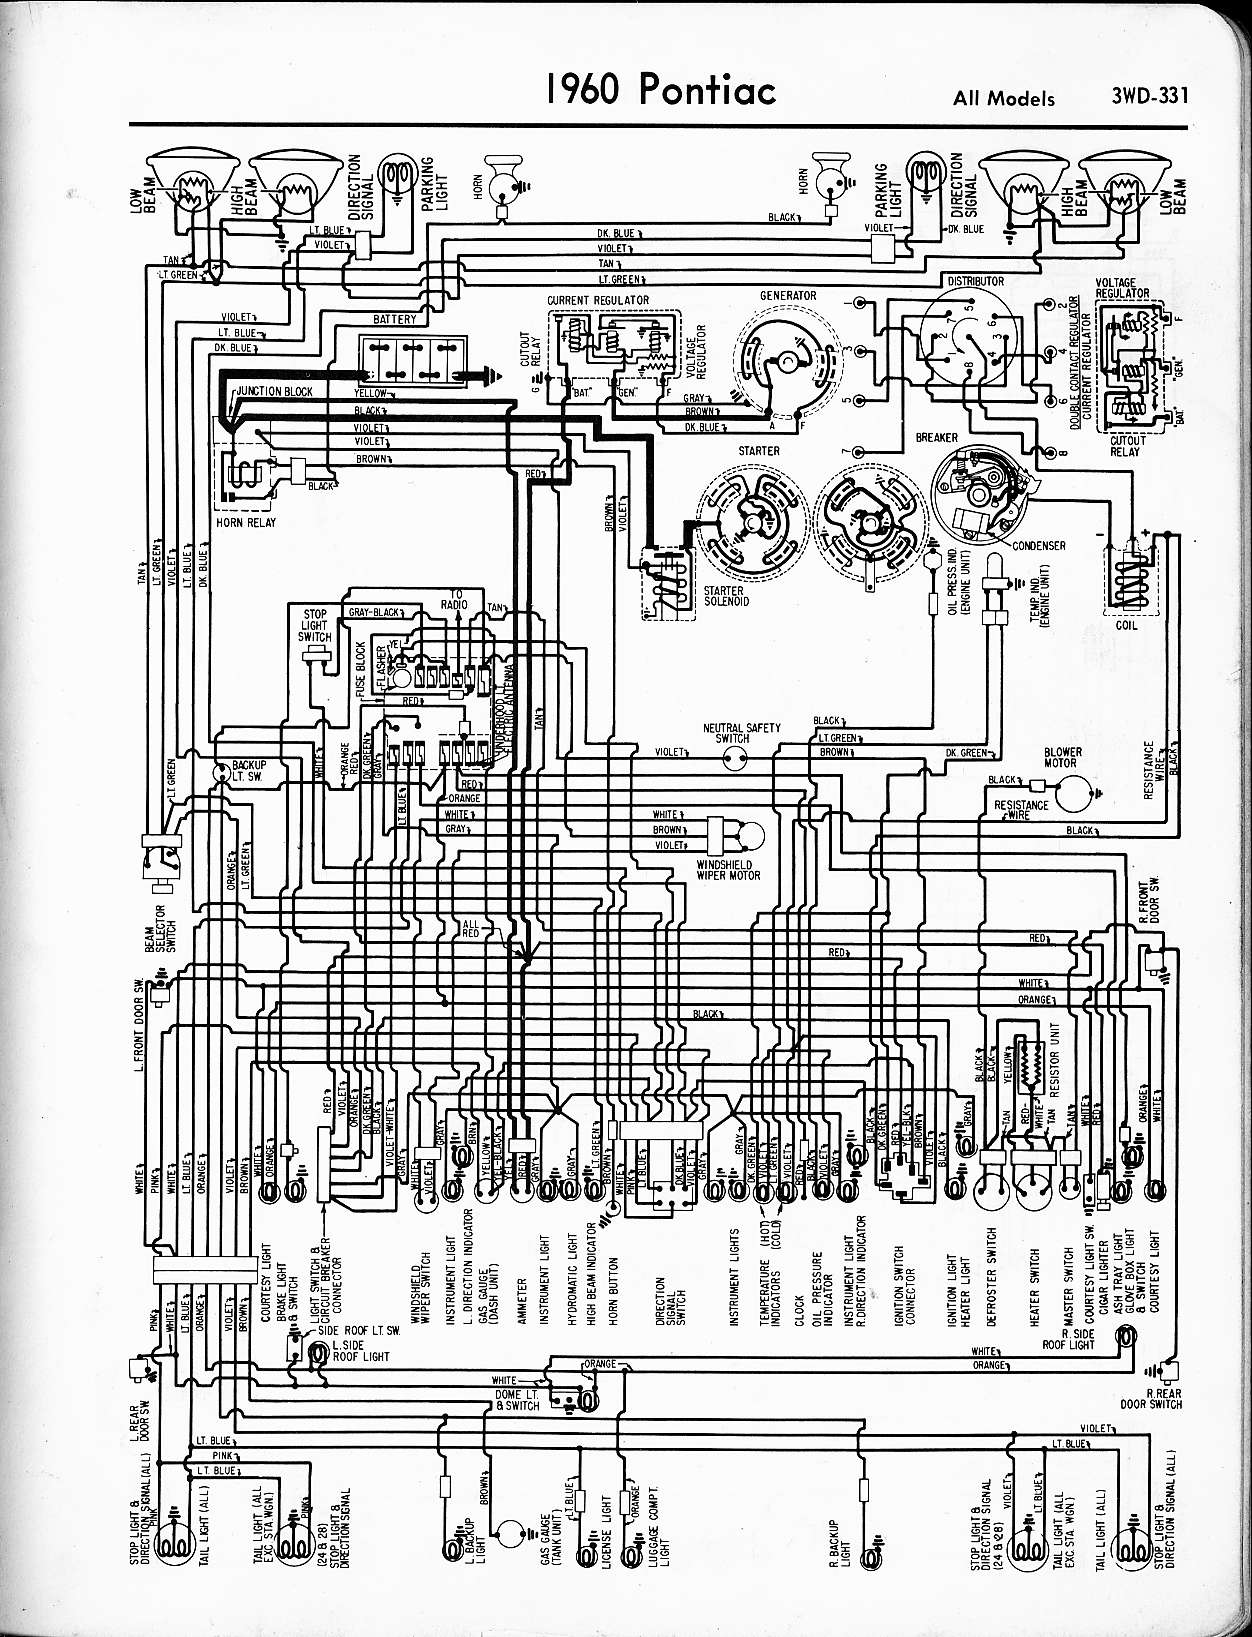 1957 Pontiac Wiring Harness Nice Place To Get Diagram Hayabusa In Addition Mastercraft On Schematics Rh Ksefanzone Com 1959 Buick